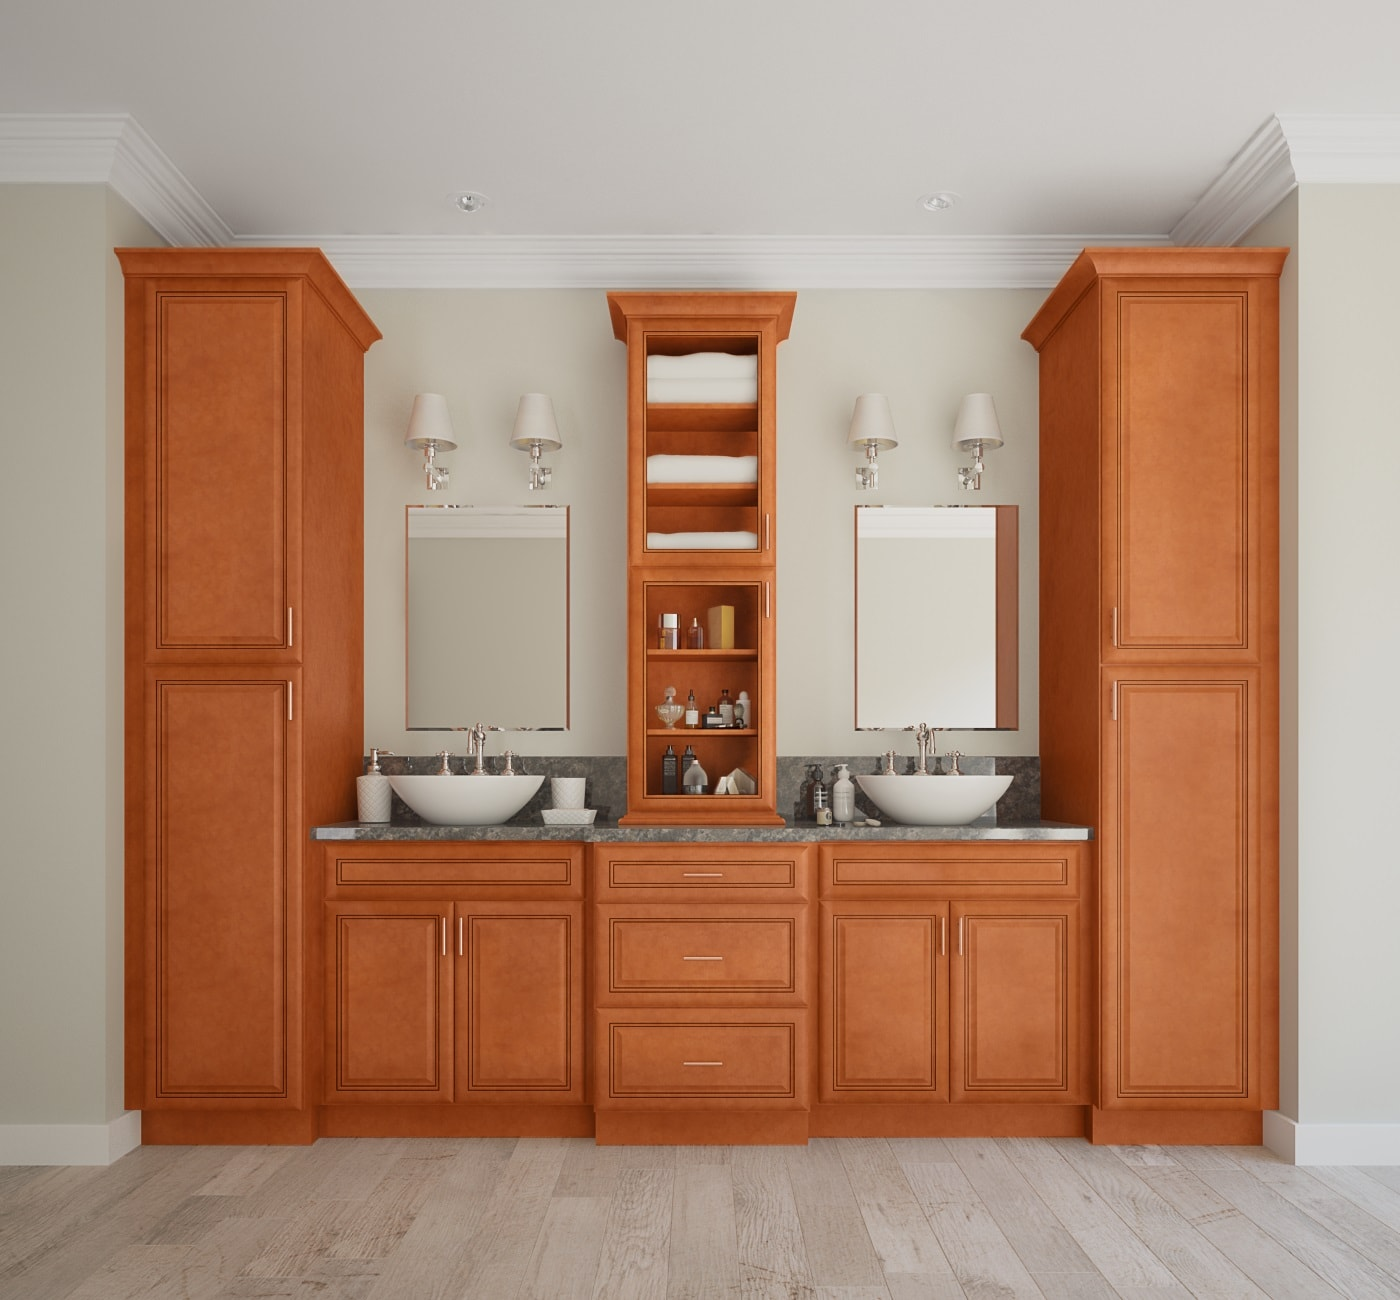 Bathroom Cabinets: Regency Spiced Glaze Pre-Assembled Bathroom Vanities